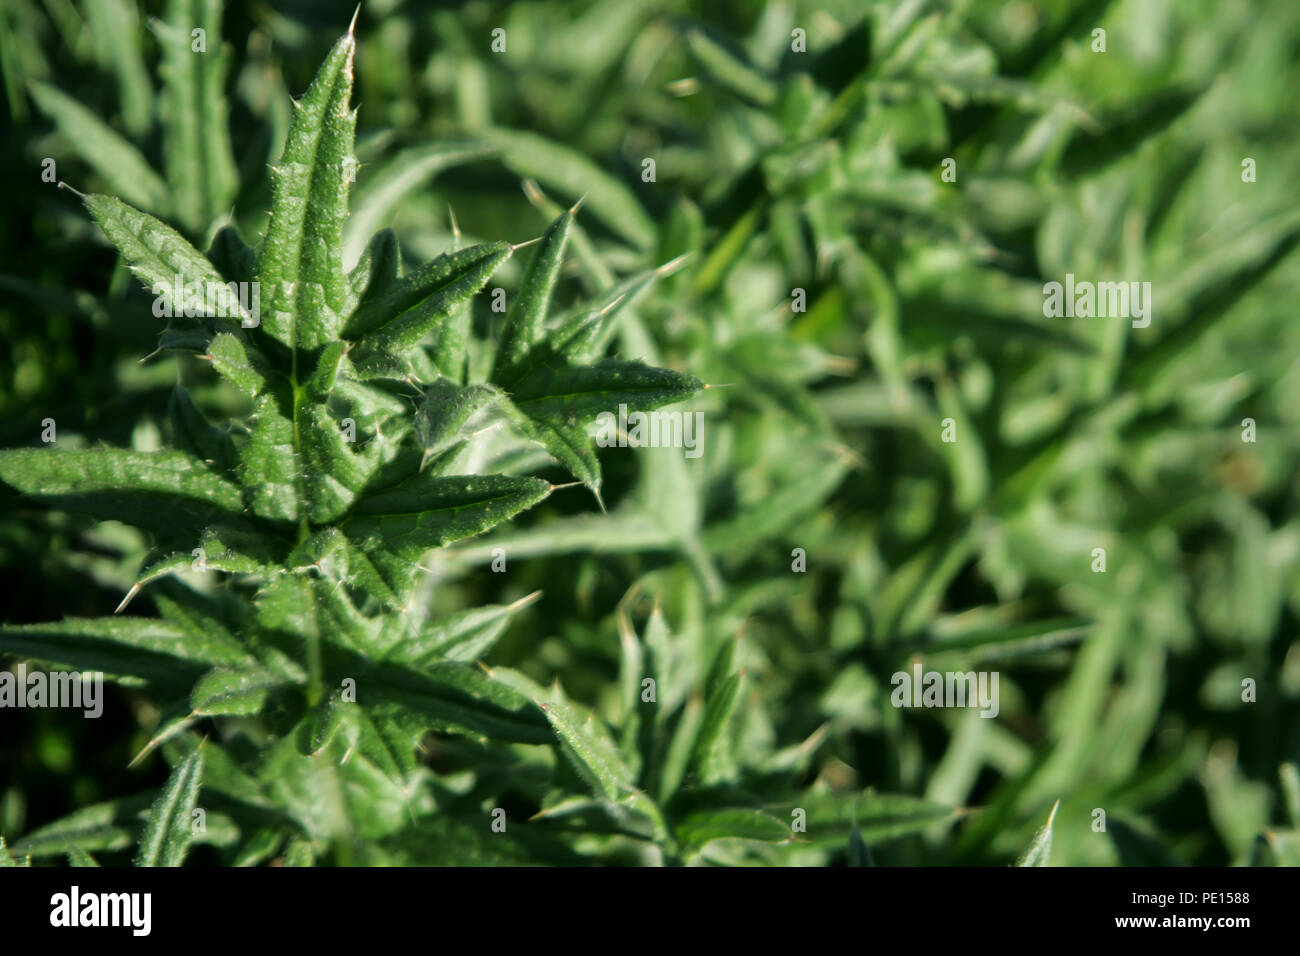 close up of thorny thistle leaves - Stock Image